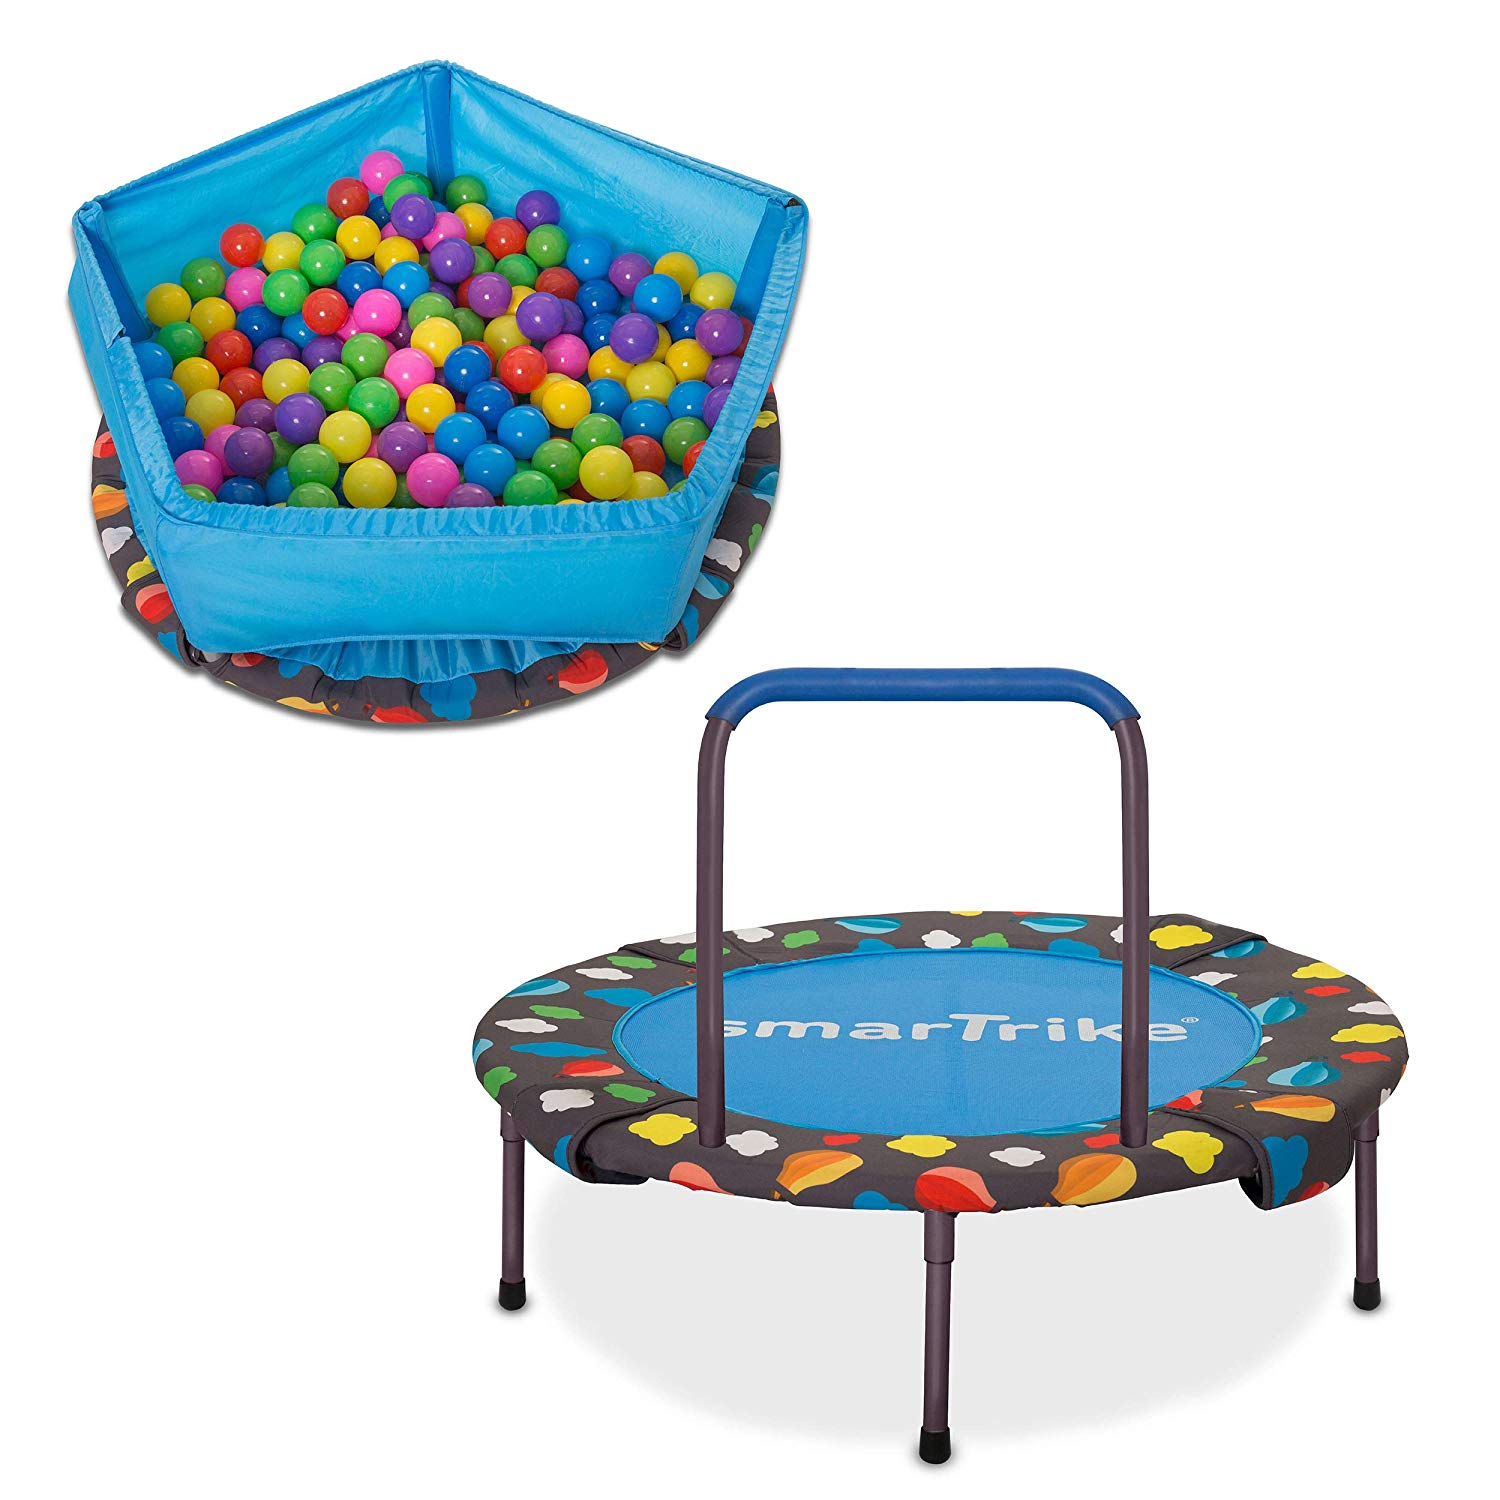 Smartrike 3 In 1 Trampoline, Ball Pit & Activity Centre concernant Piscine A Balle Toysrus